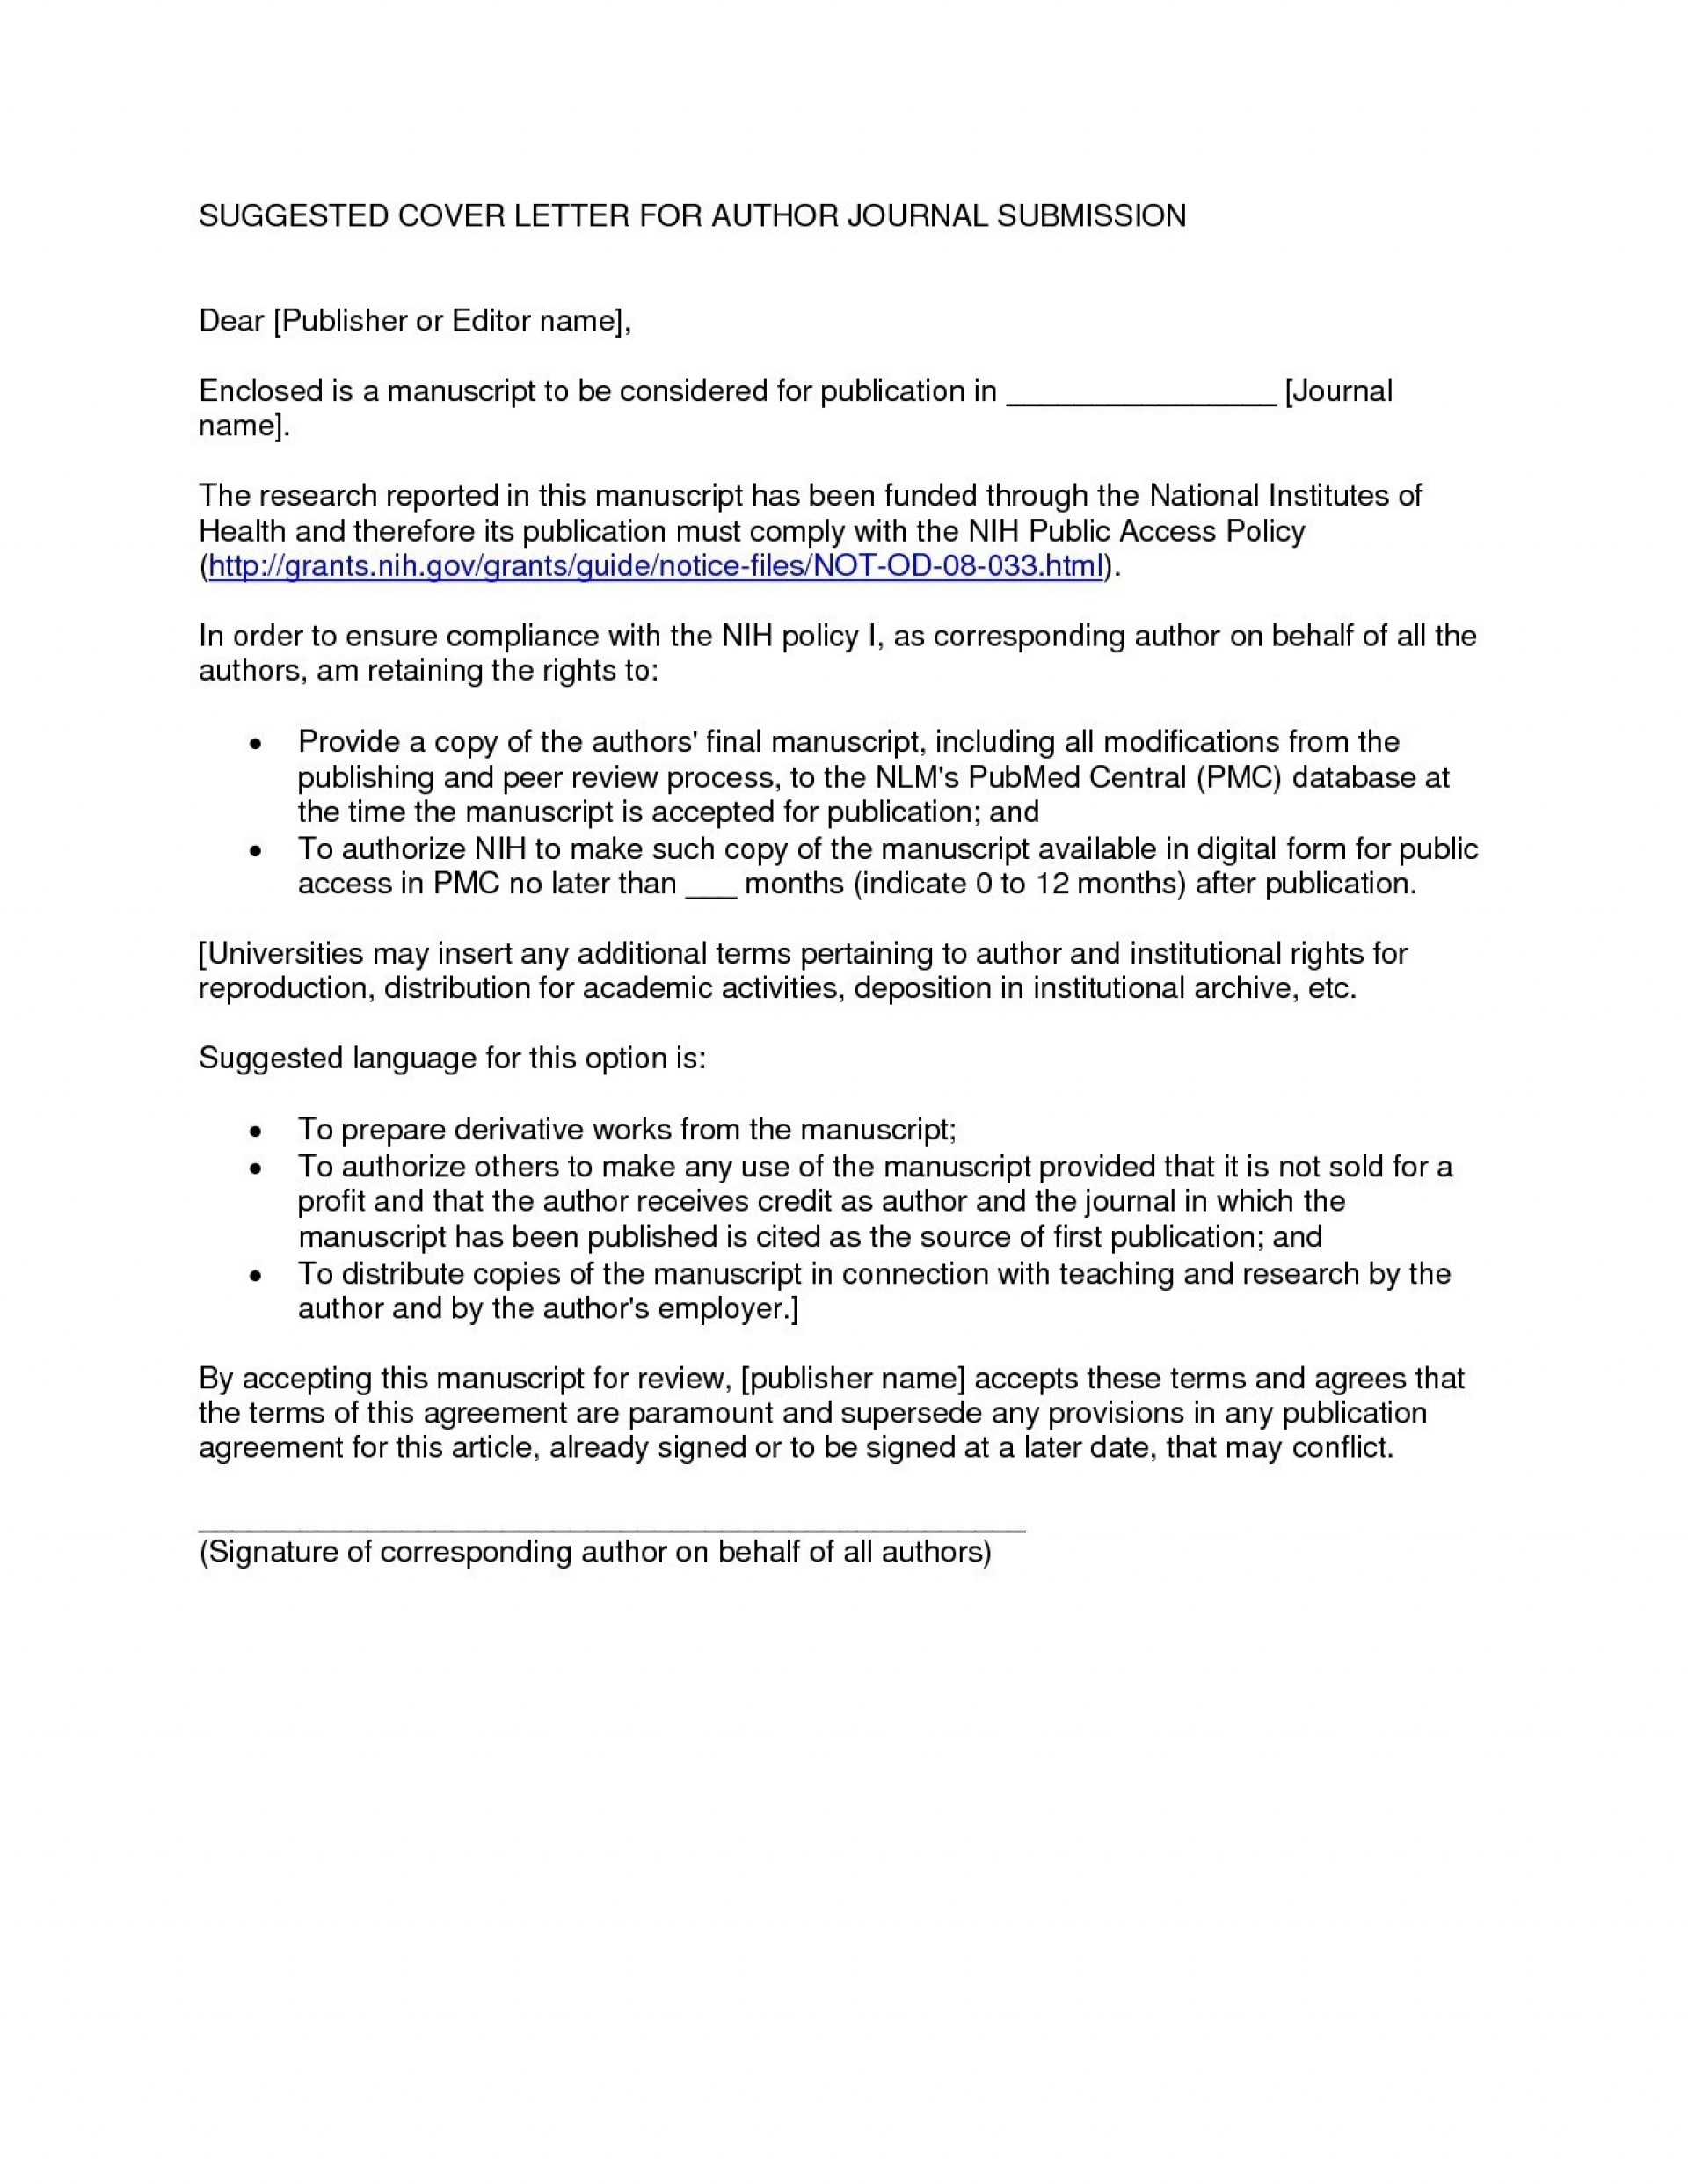 013 Cover Letter Template Manuscript Submission New Example To Journal Valid Sample Of For Article Singular Publication Model 1920